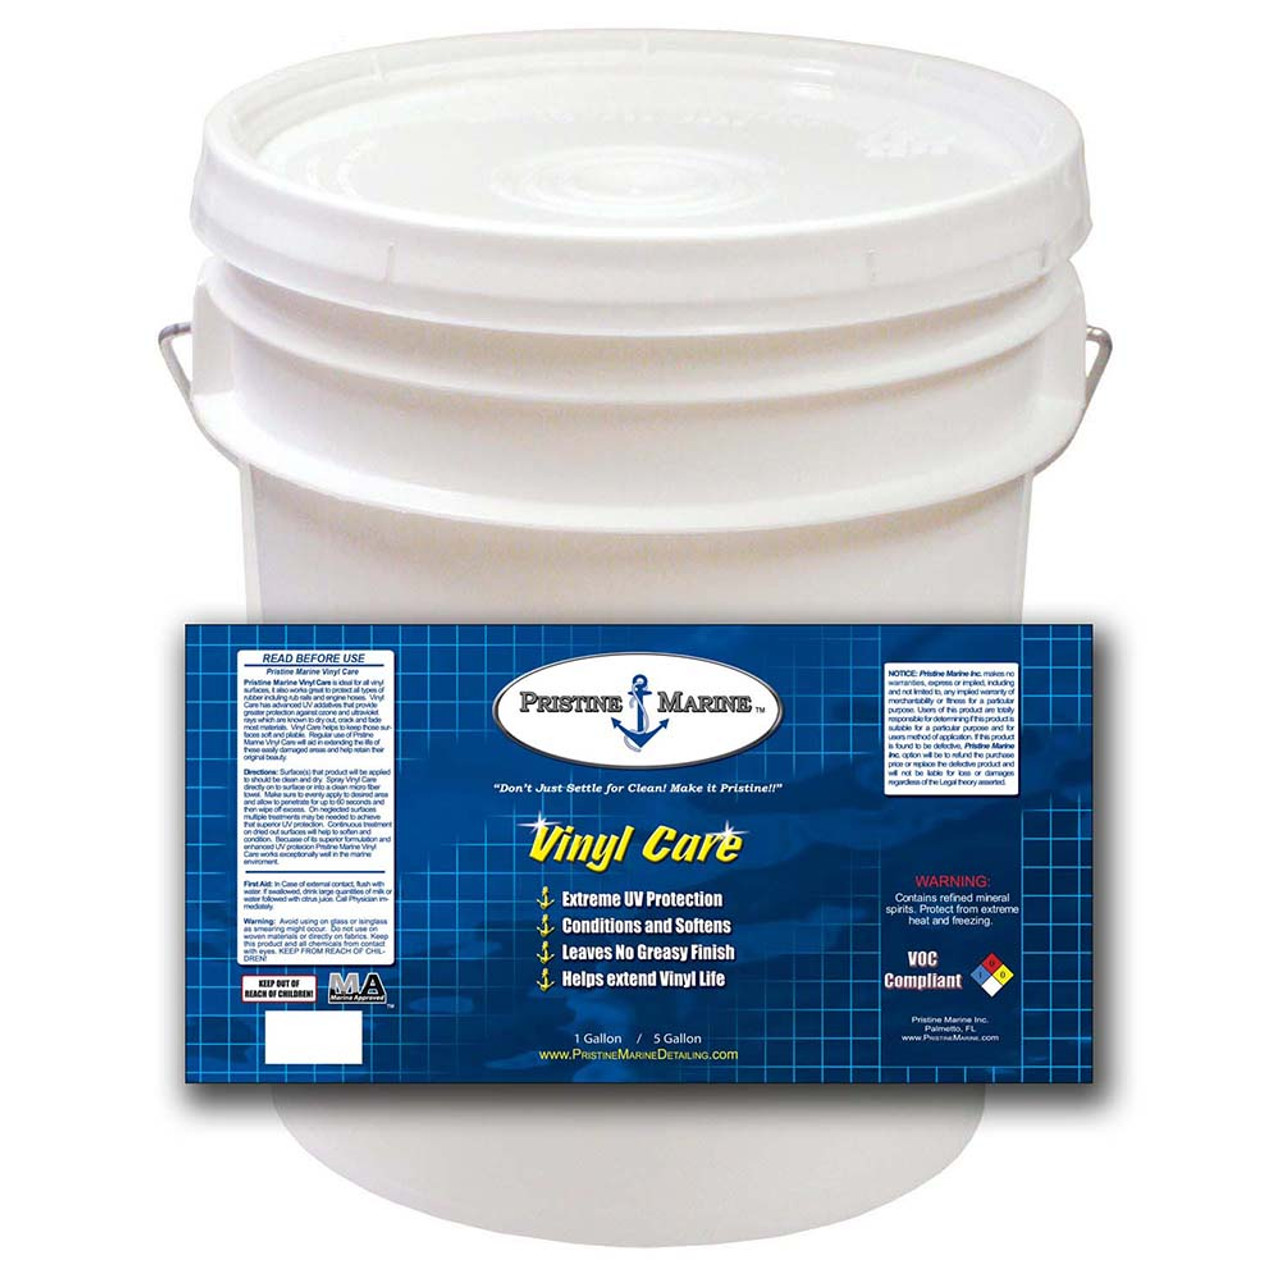 Vinyl Care (5 Gallon)